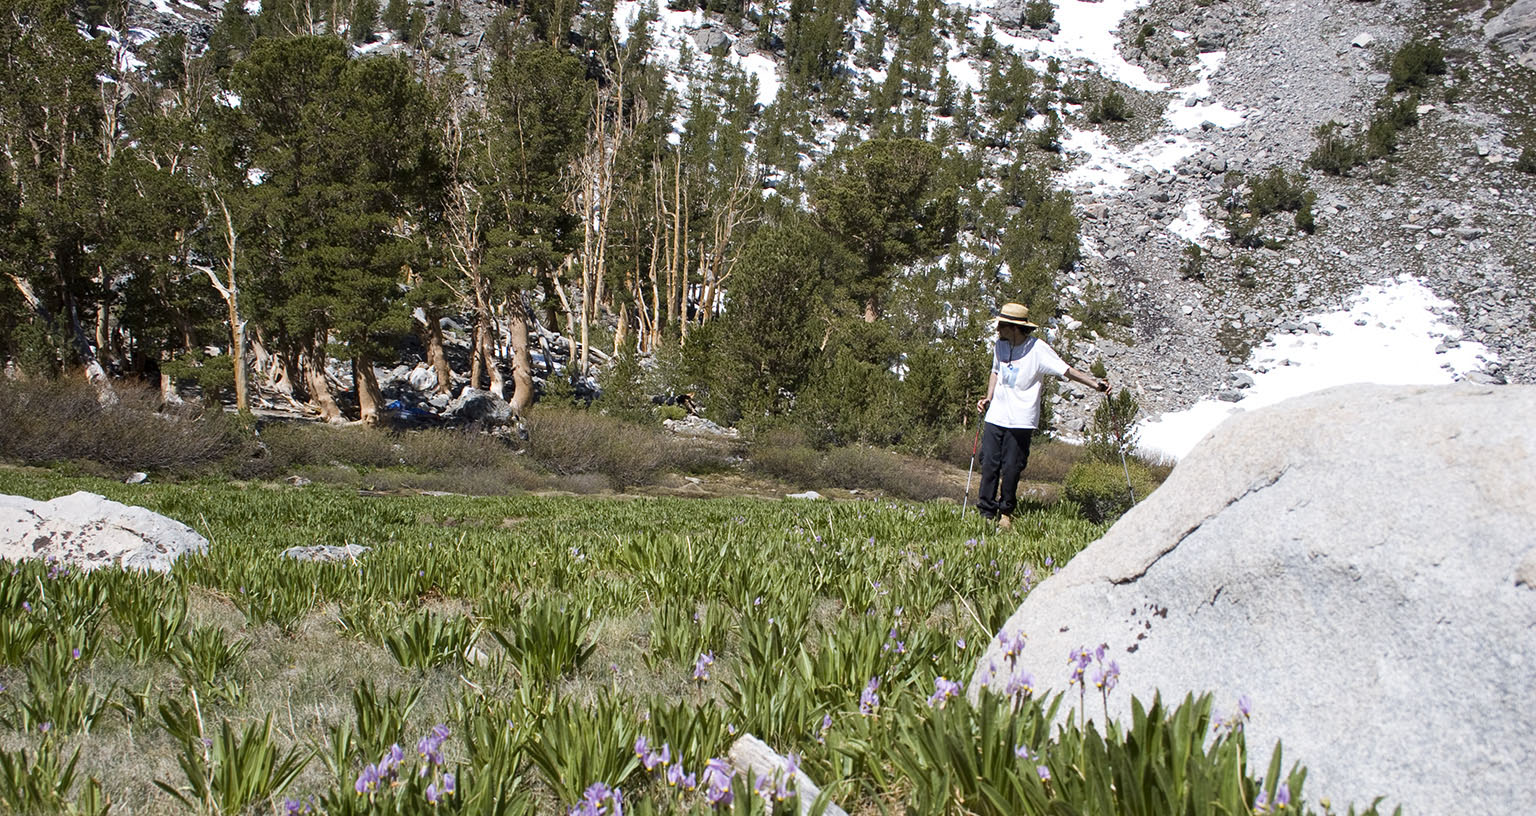 Golden Trout Meadows, wildflowers, and our tent in the background